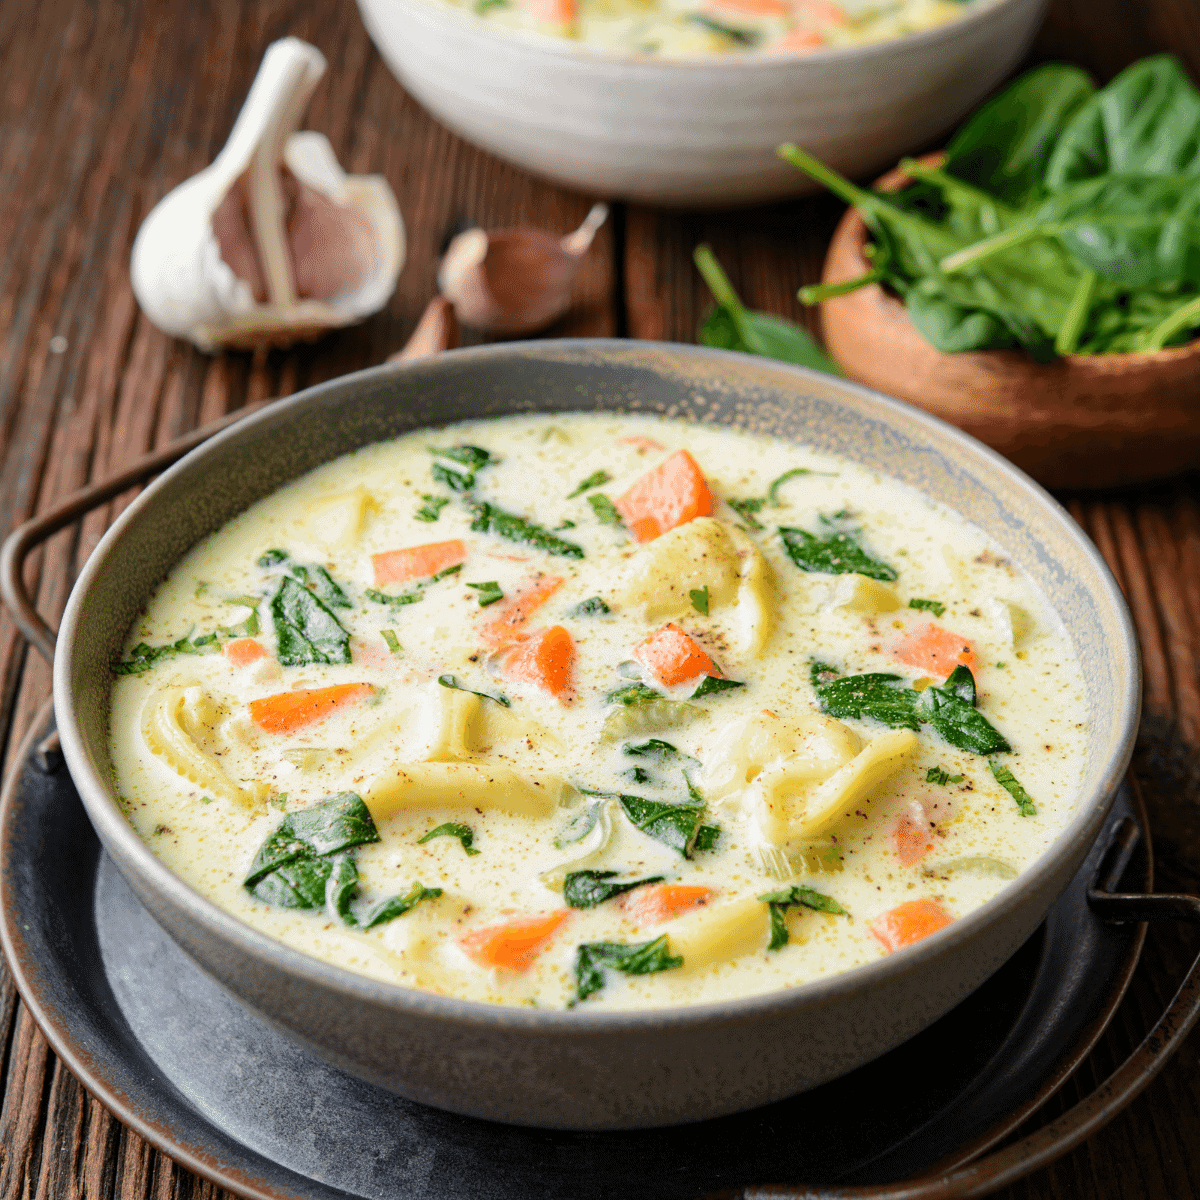 Two bowls of creamy chicken slow cooker soup with spinach and carrots and garlic